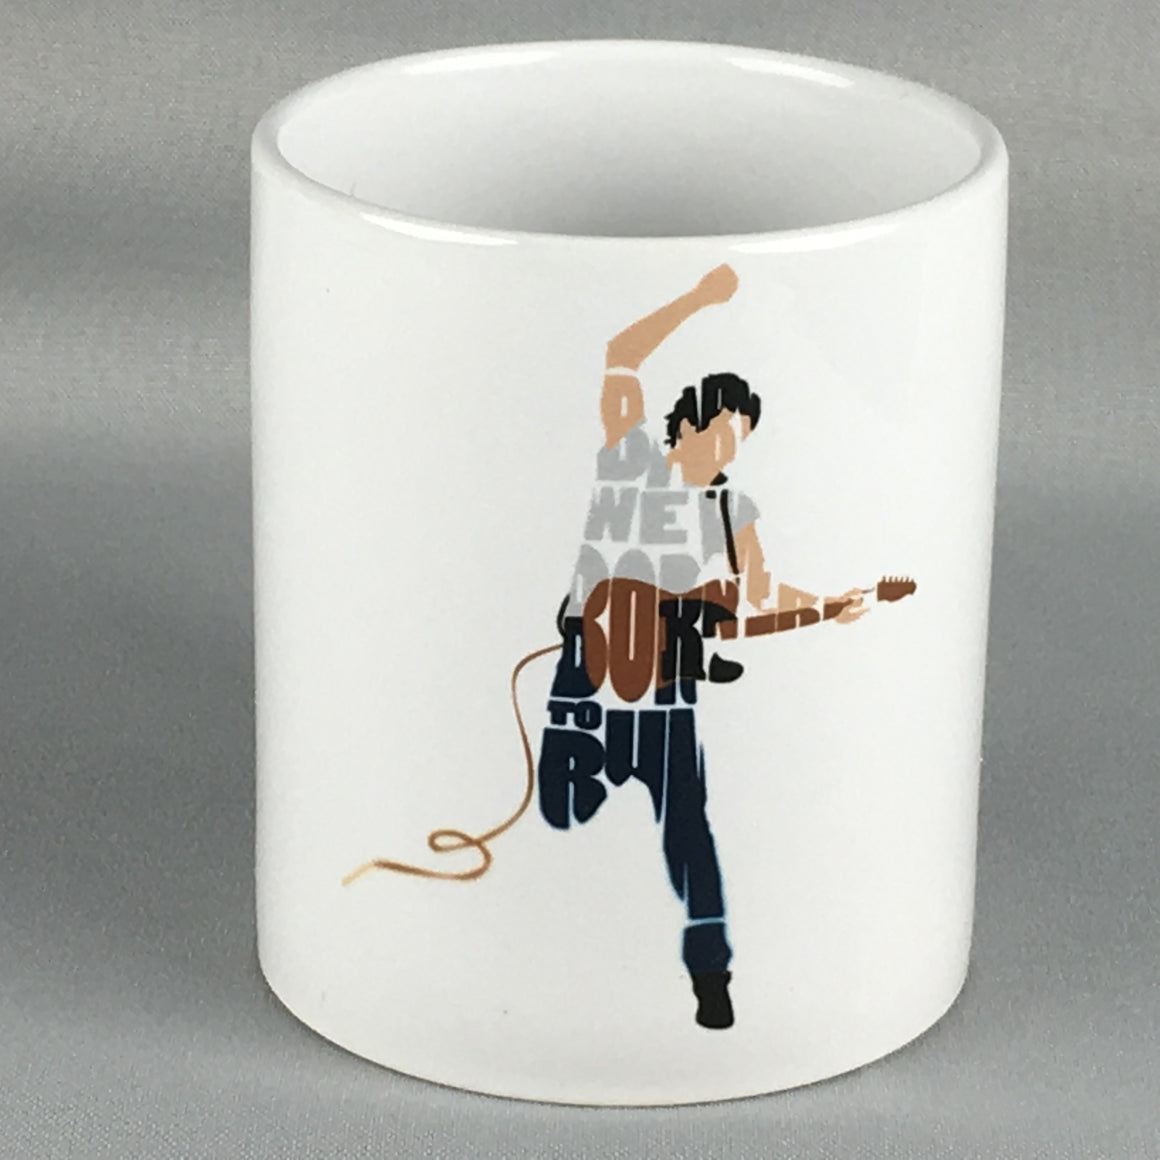 Bruce Springsteen Born to Run Coffee Mug - Beautiful, Unique Gift!